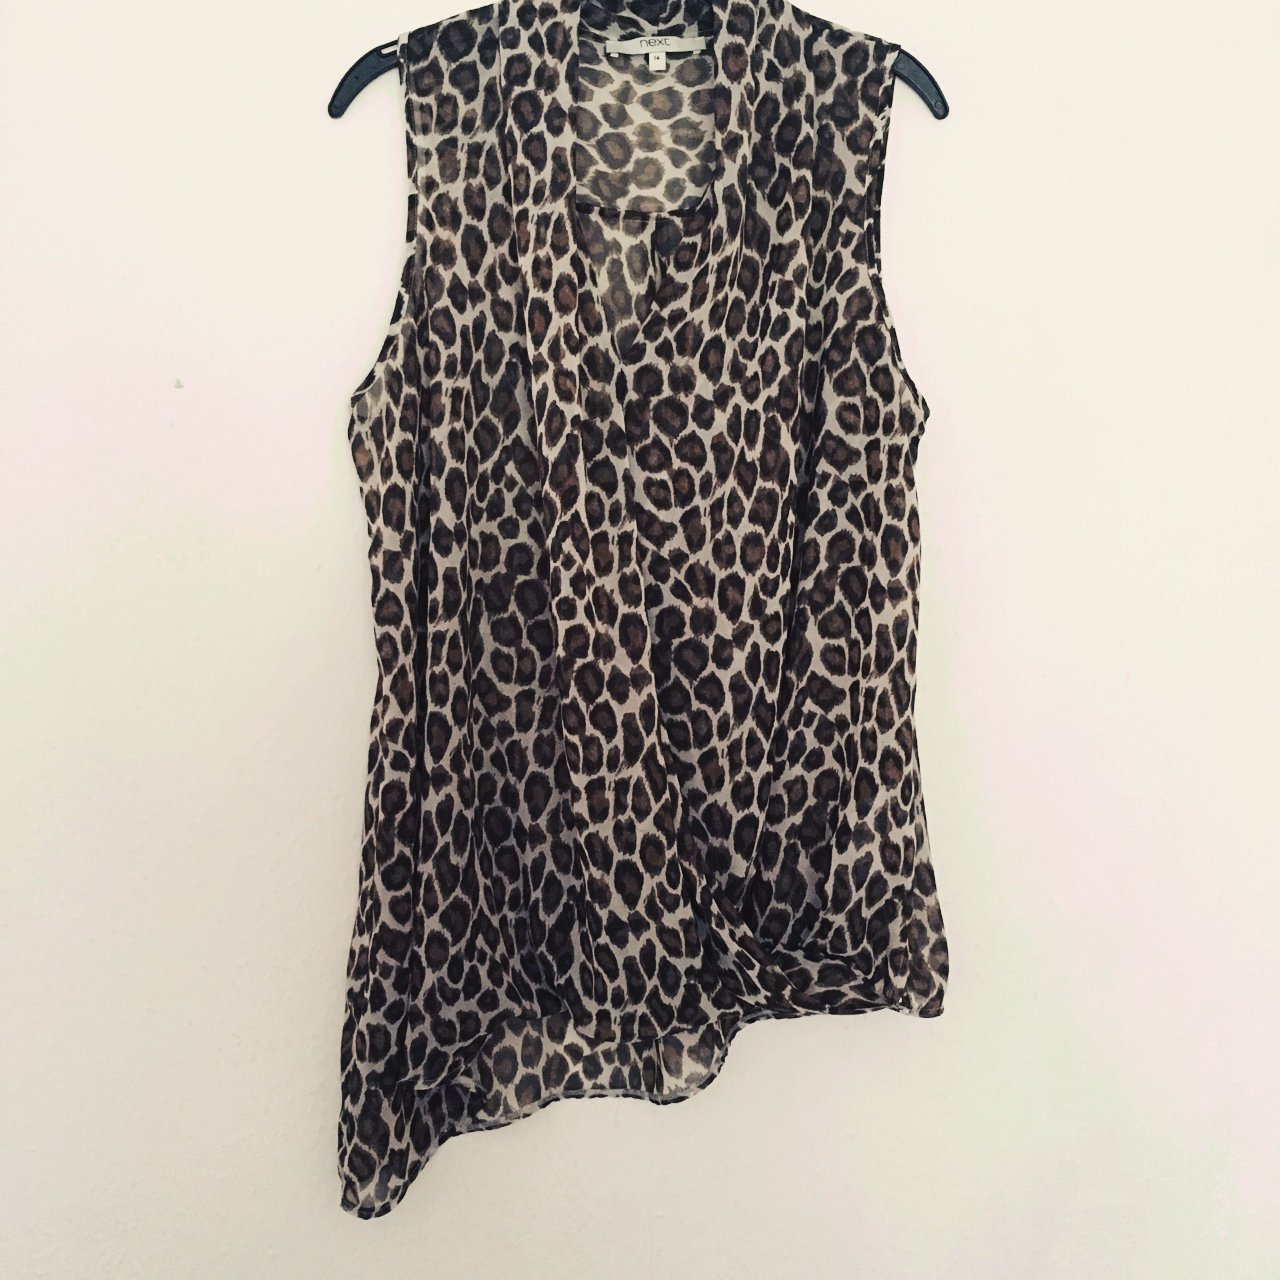 442813f90b61 Gorgeous cheetah/leopard print top from Next! Only worn a - Depop